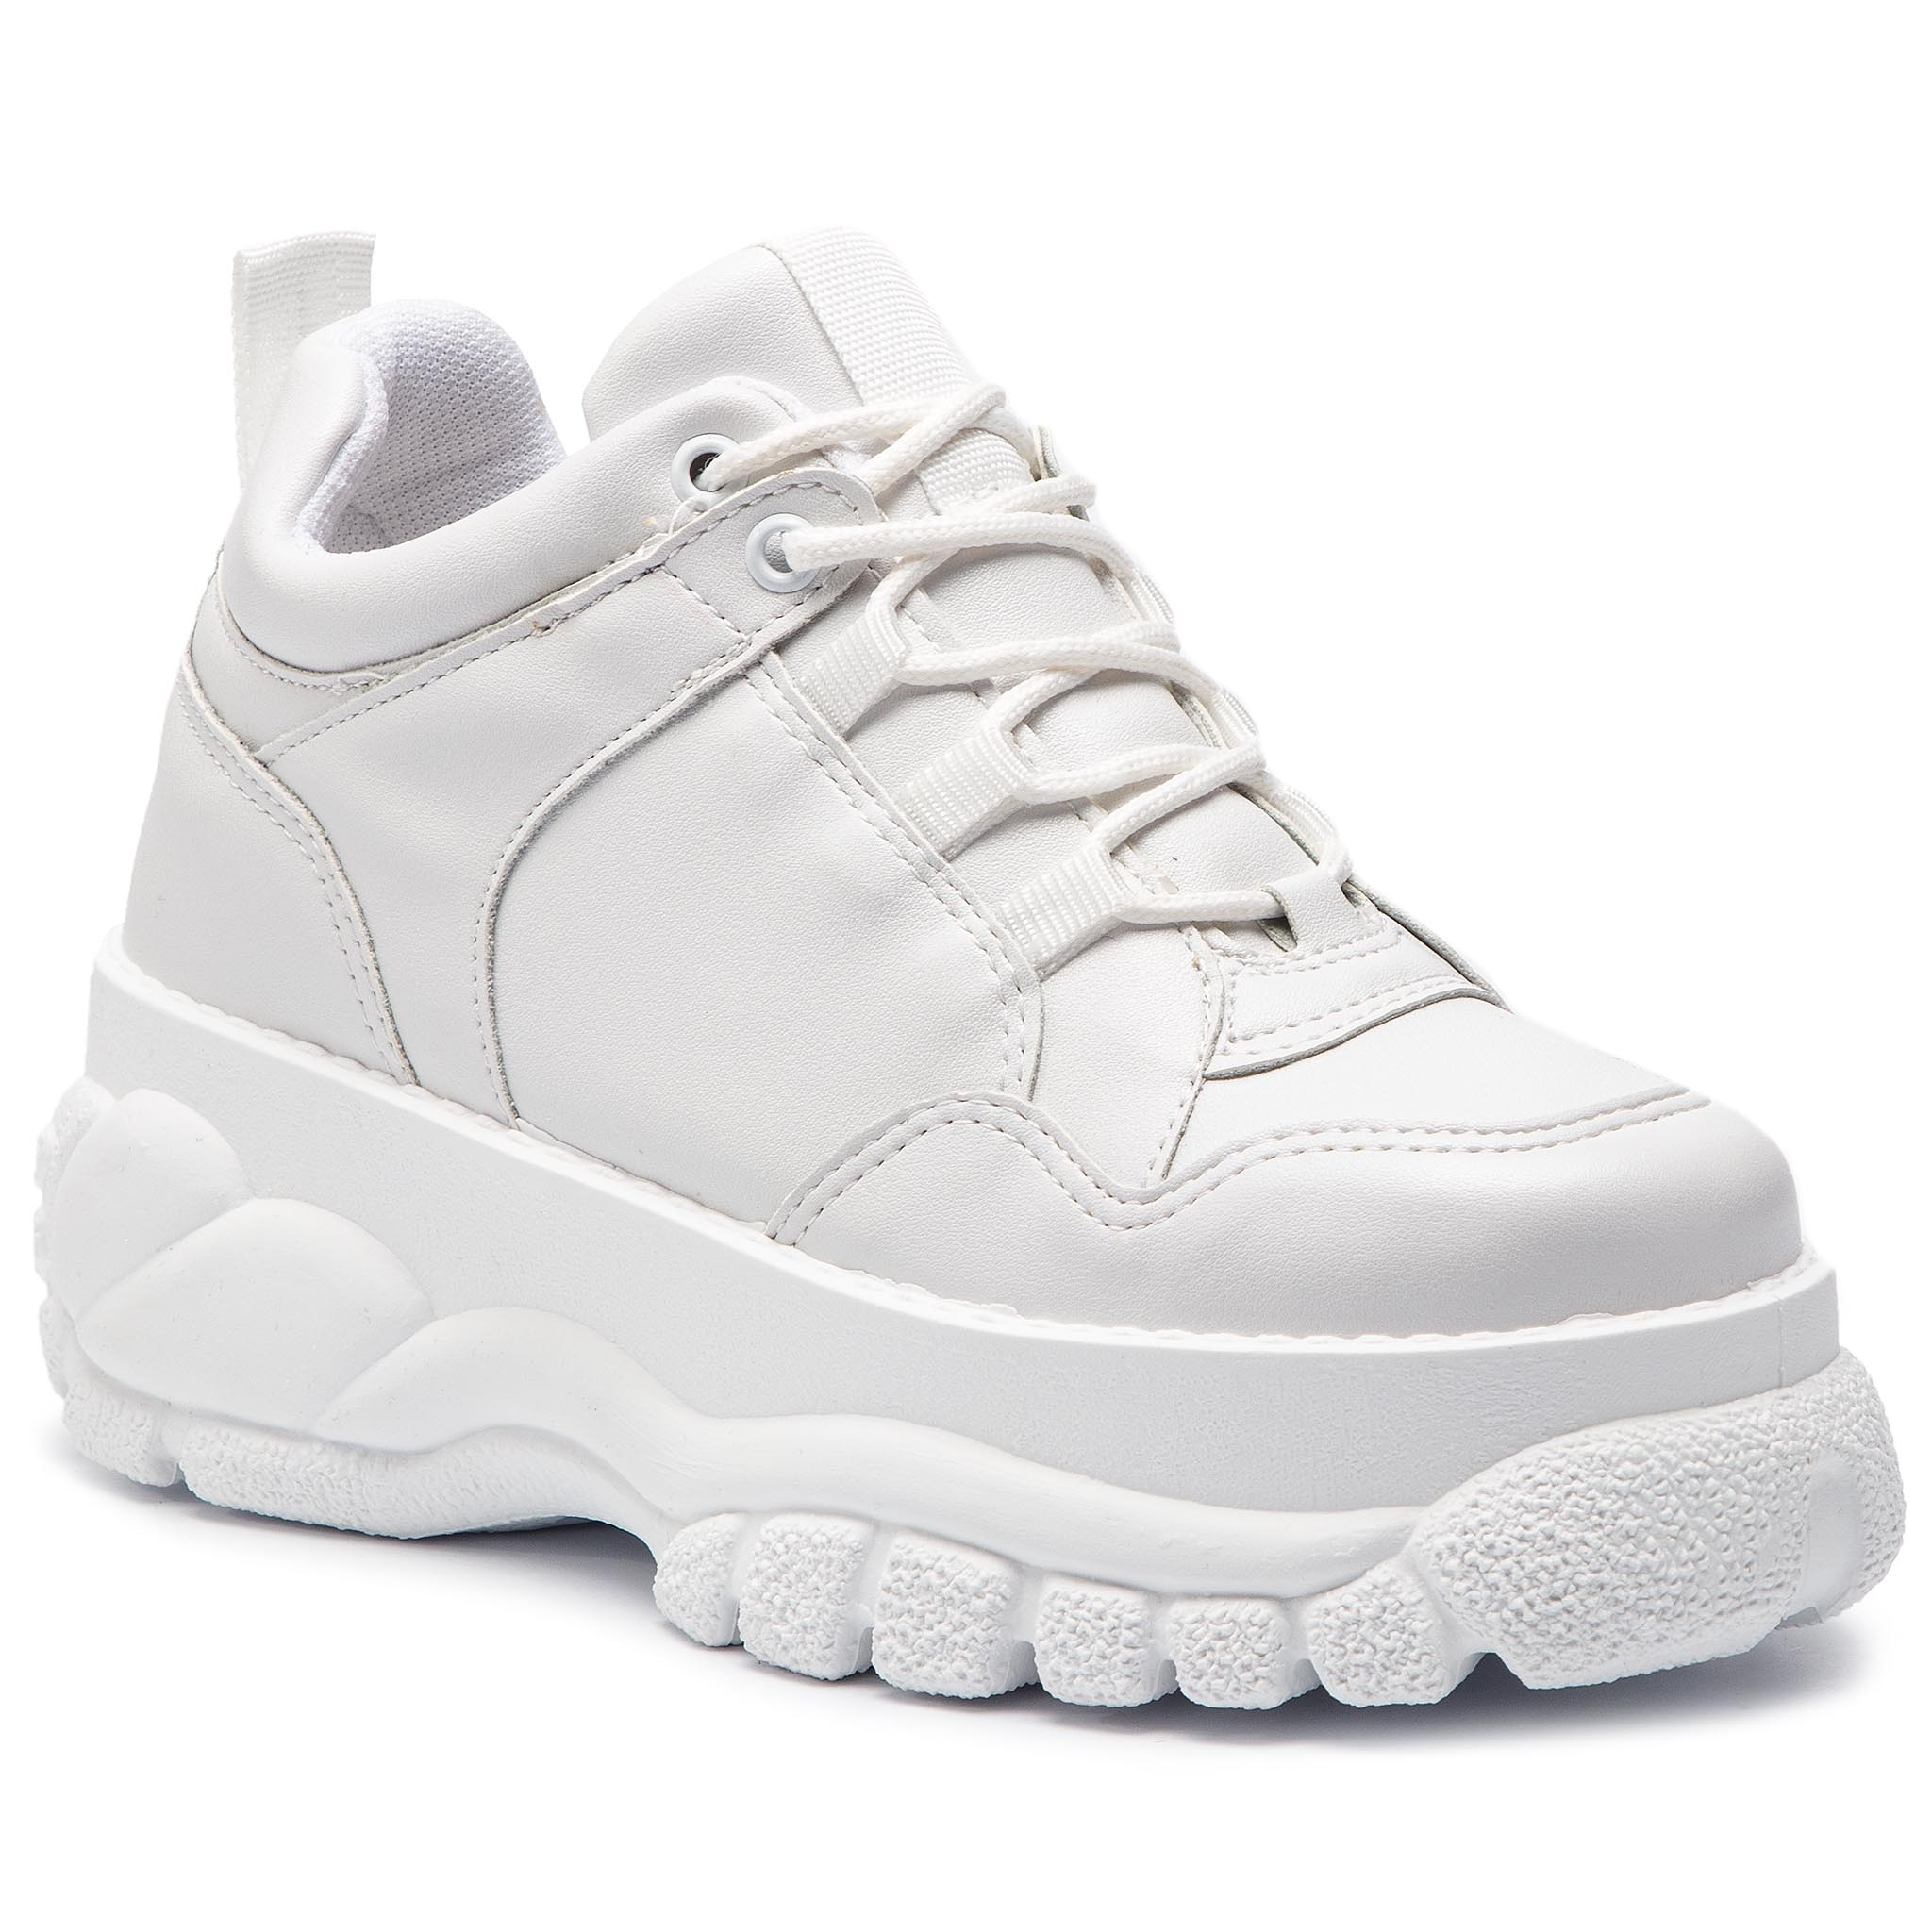 Image of Sneakers ALTERCORE - Mossi White